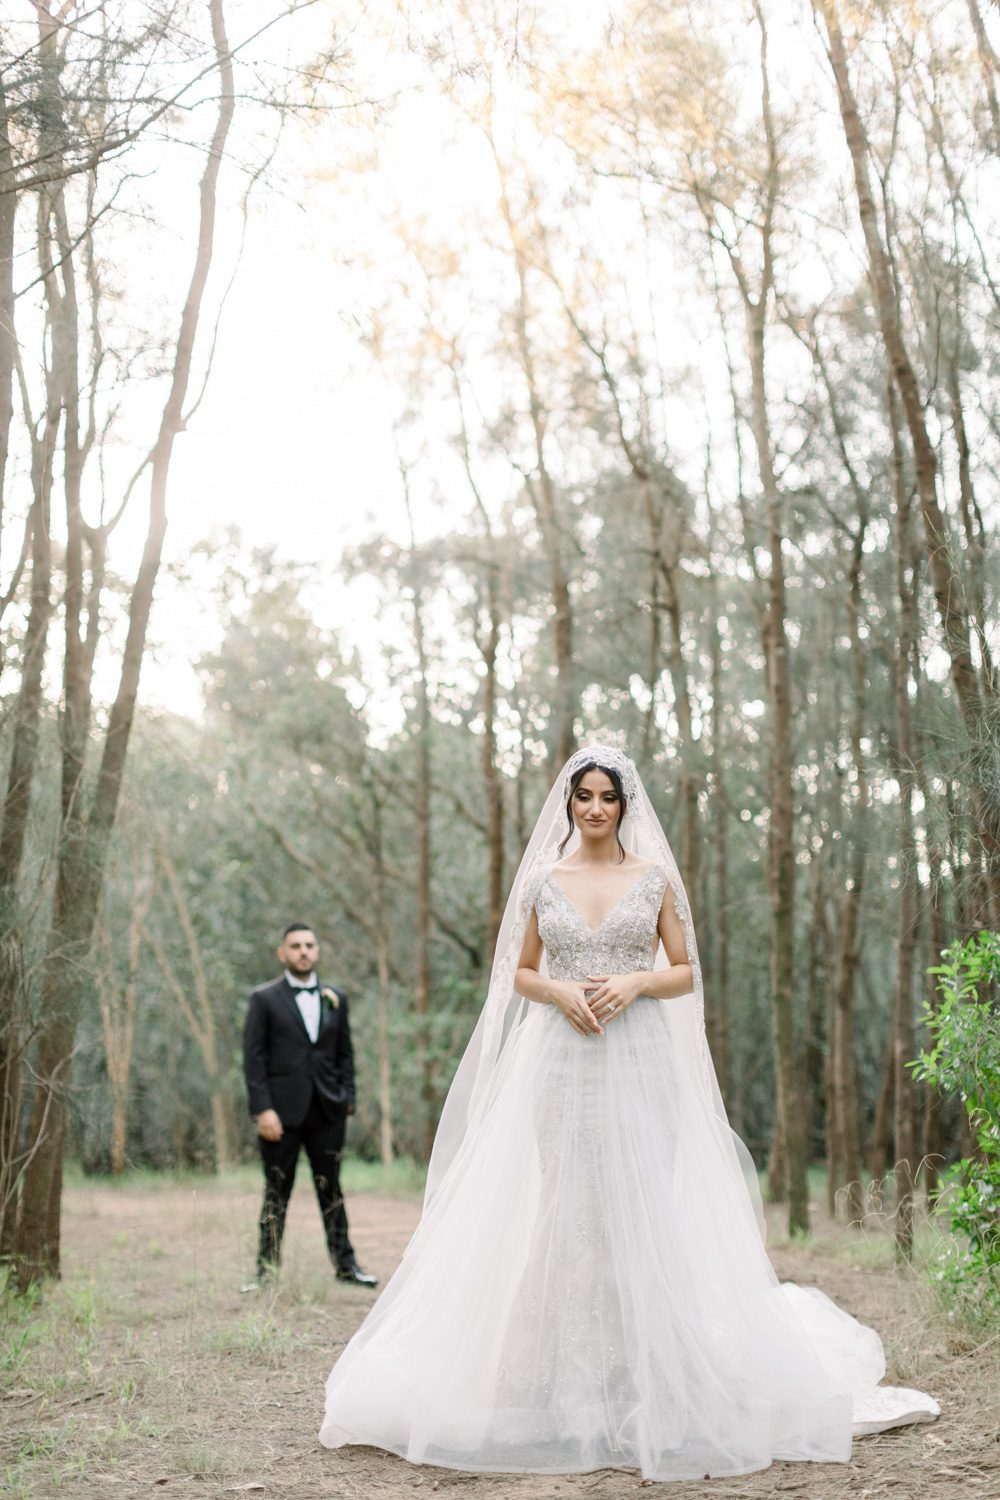 Photos of bride and groom and the bridal party at Sydney Olympic park